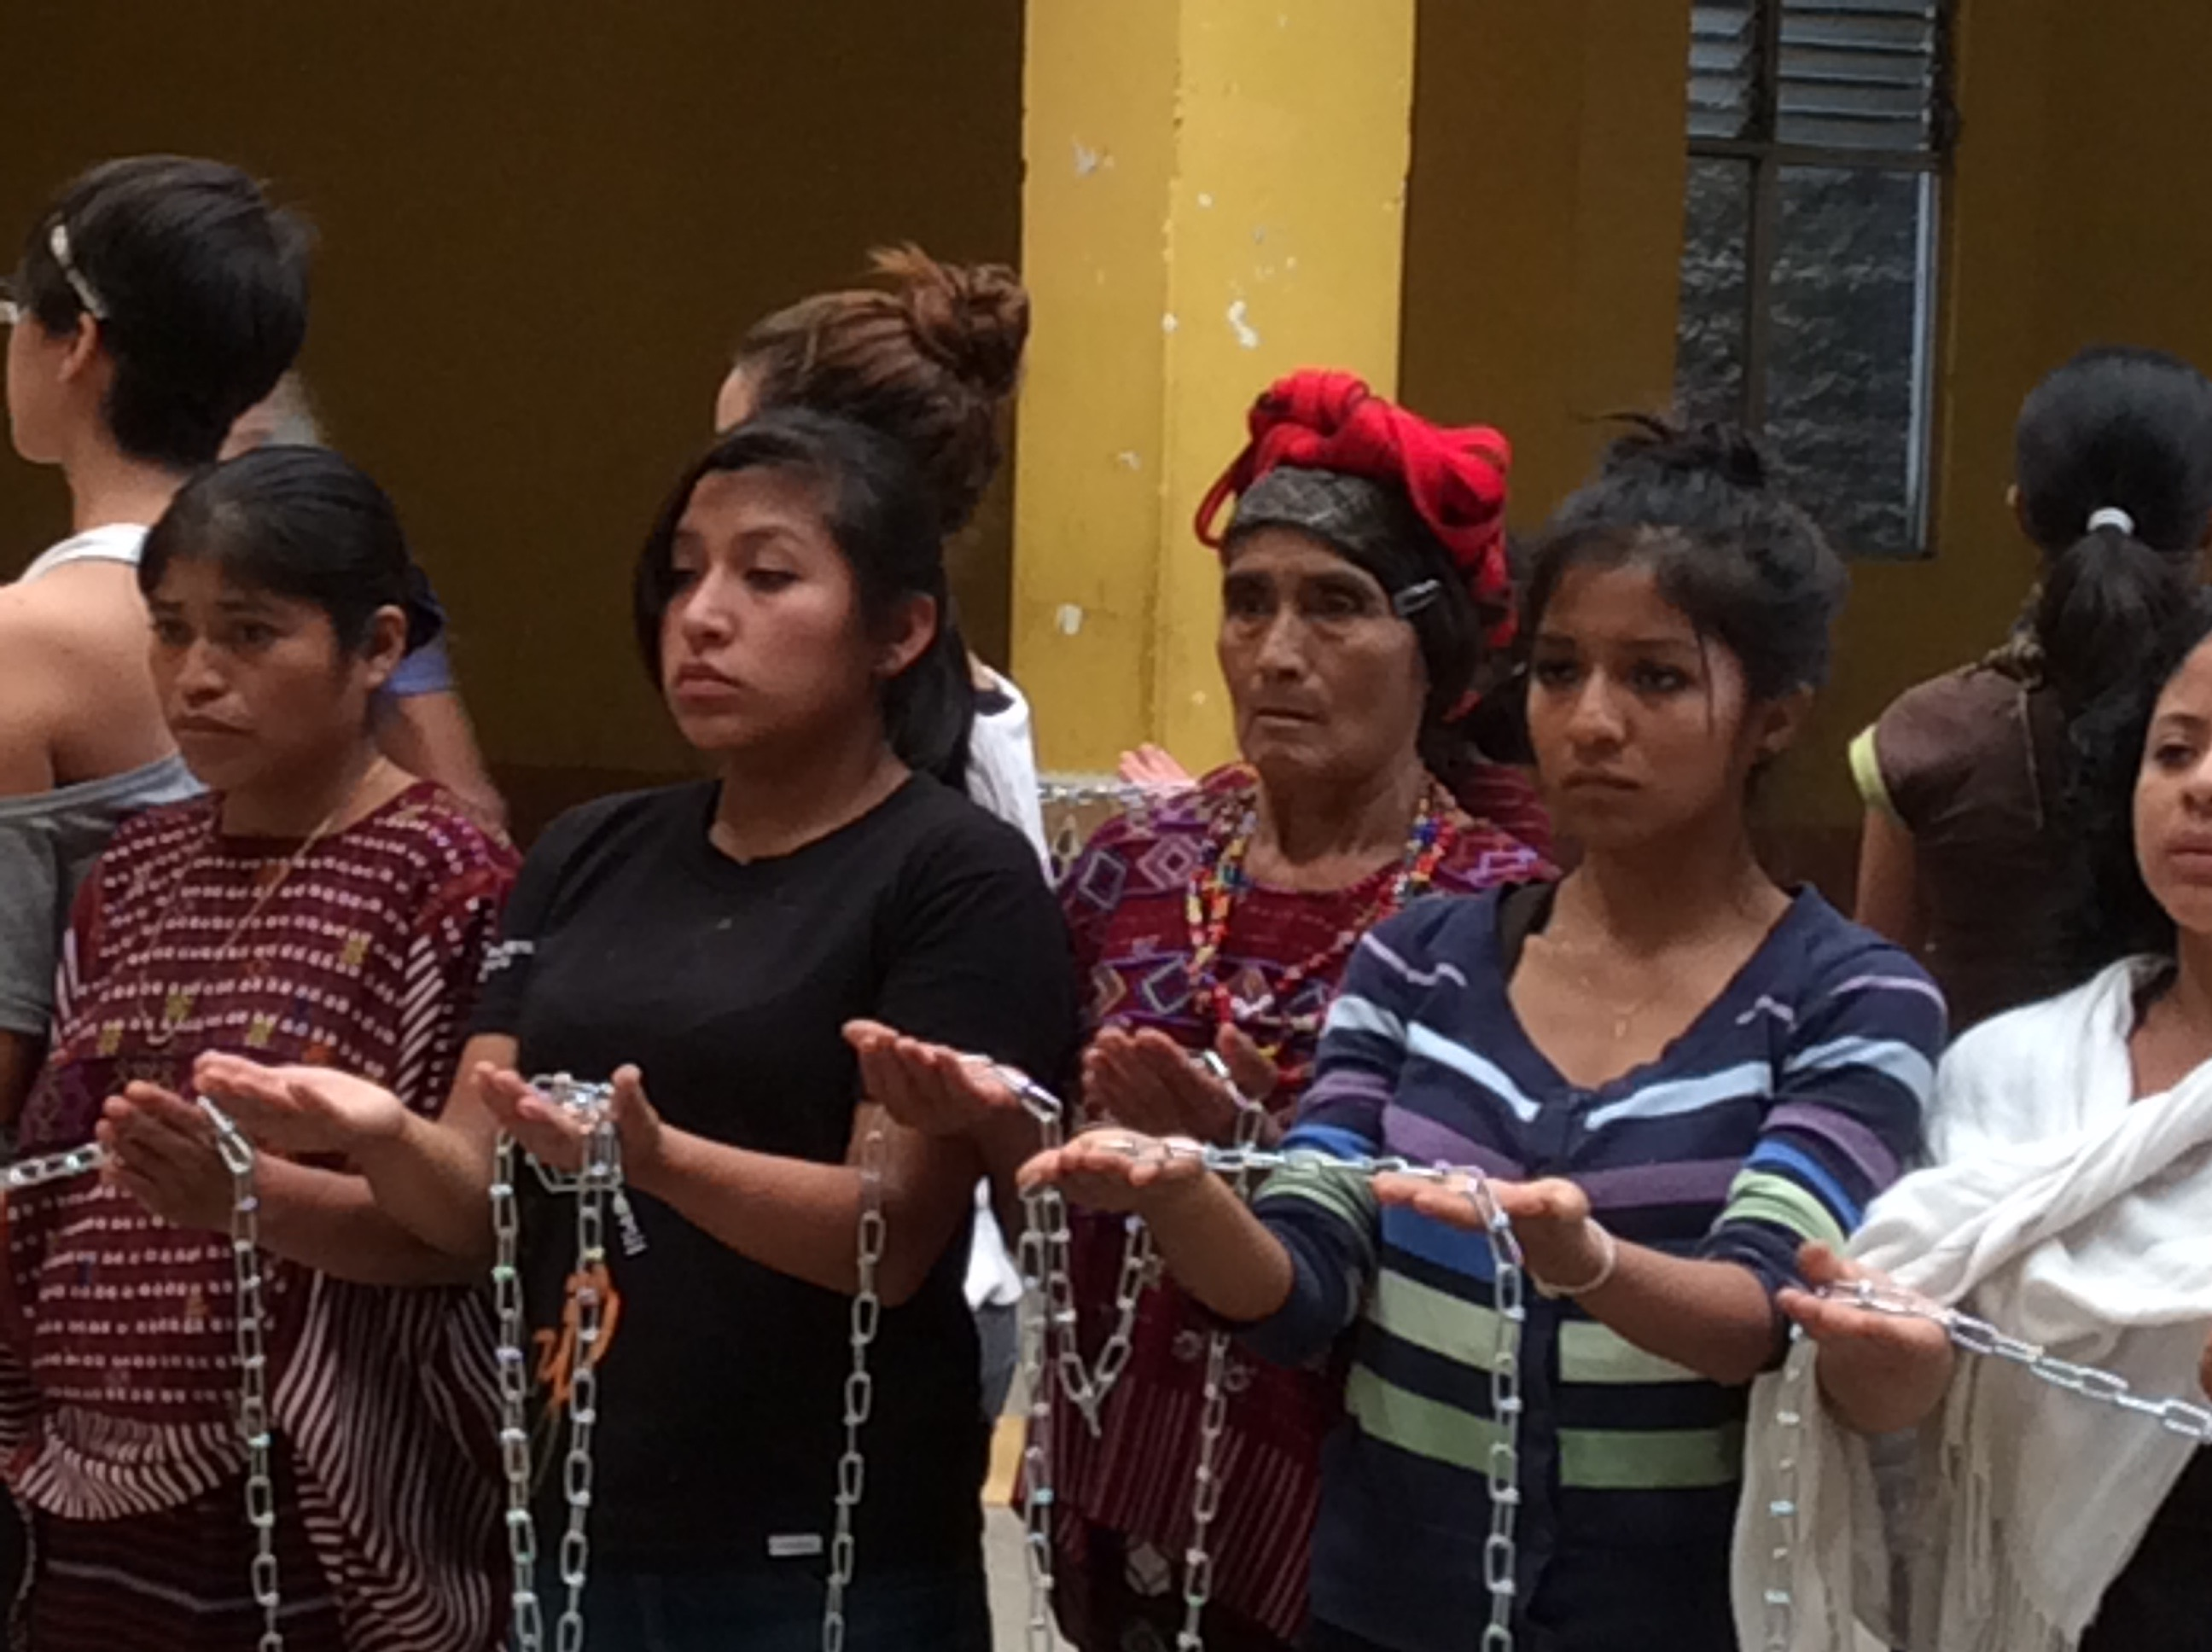 a line of people holding a chain